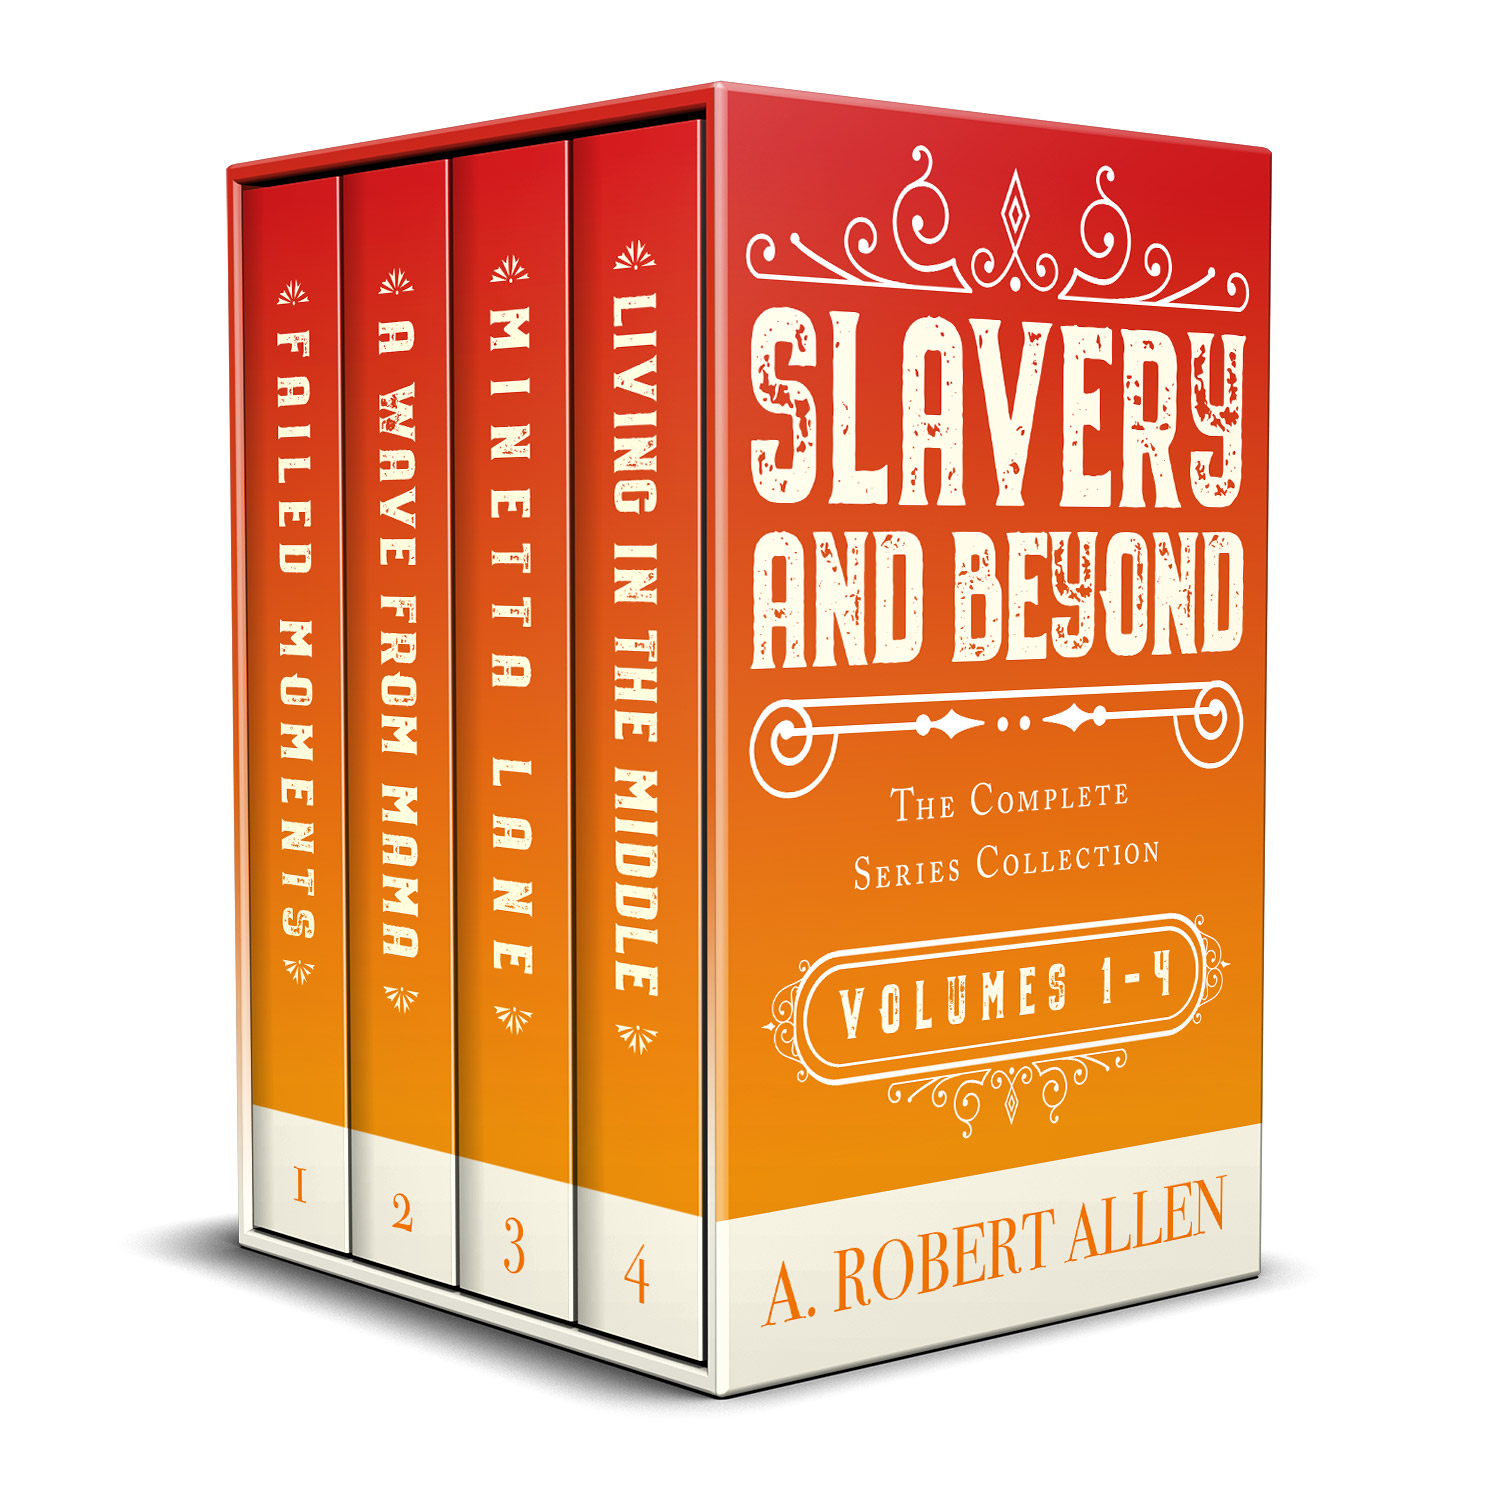 The 'Slavery and Beyond' book series charts the lives of multiple characters from the mid-19th to early 20th century America. The series author is A. Robert Allen. The book cover design is by Mark Thomas. To learn more about what Mark could do for your book, please visit coverness.com.